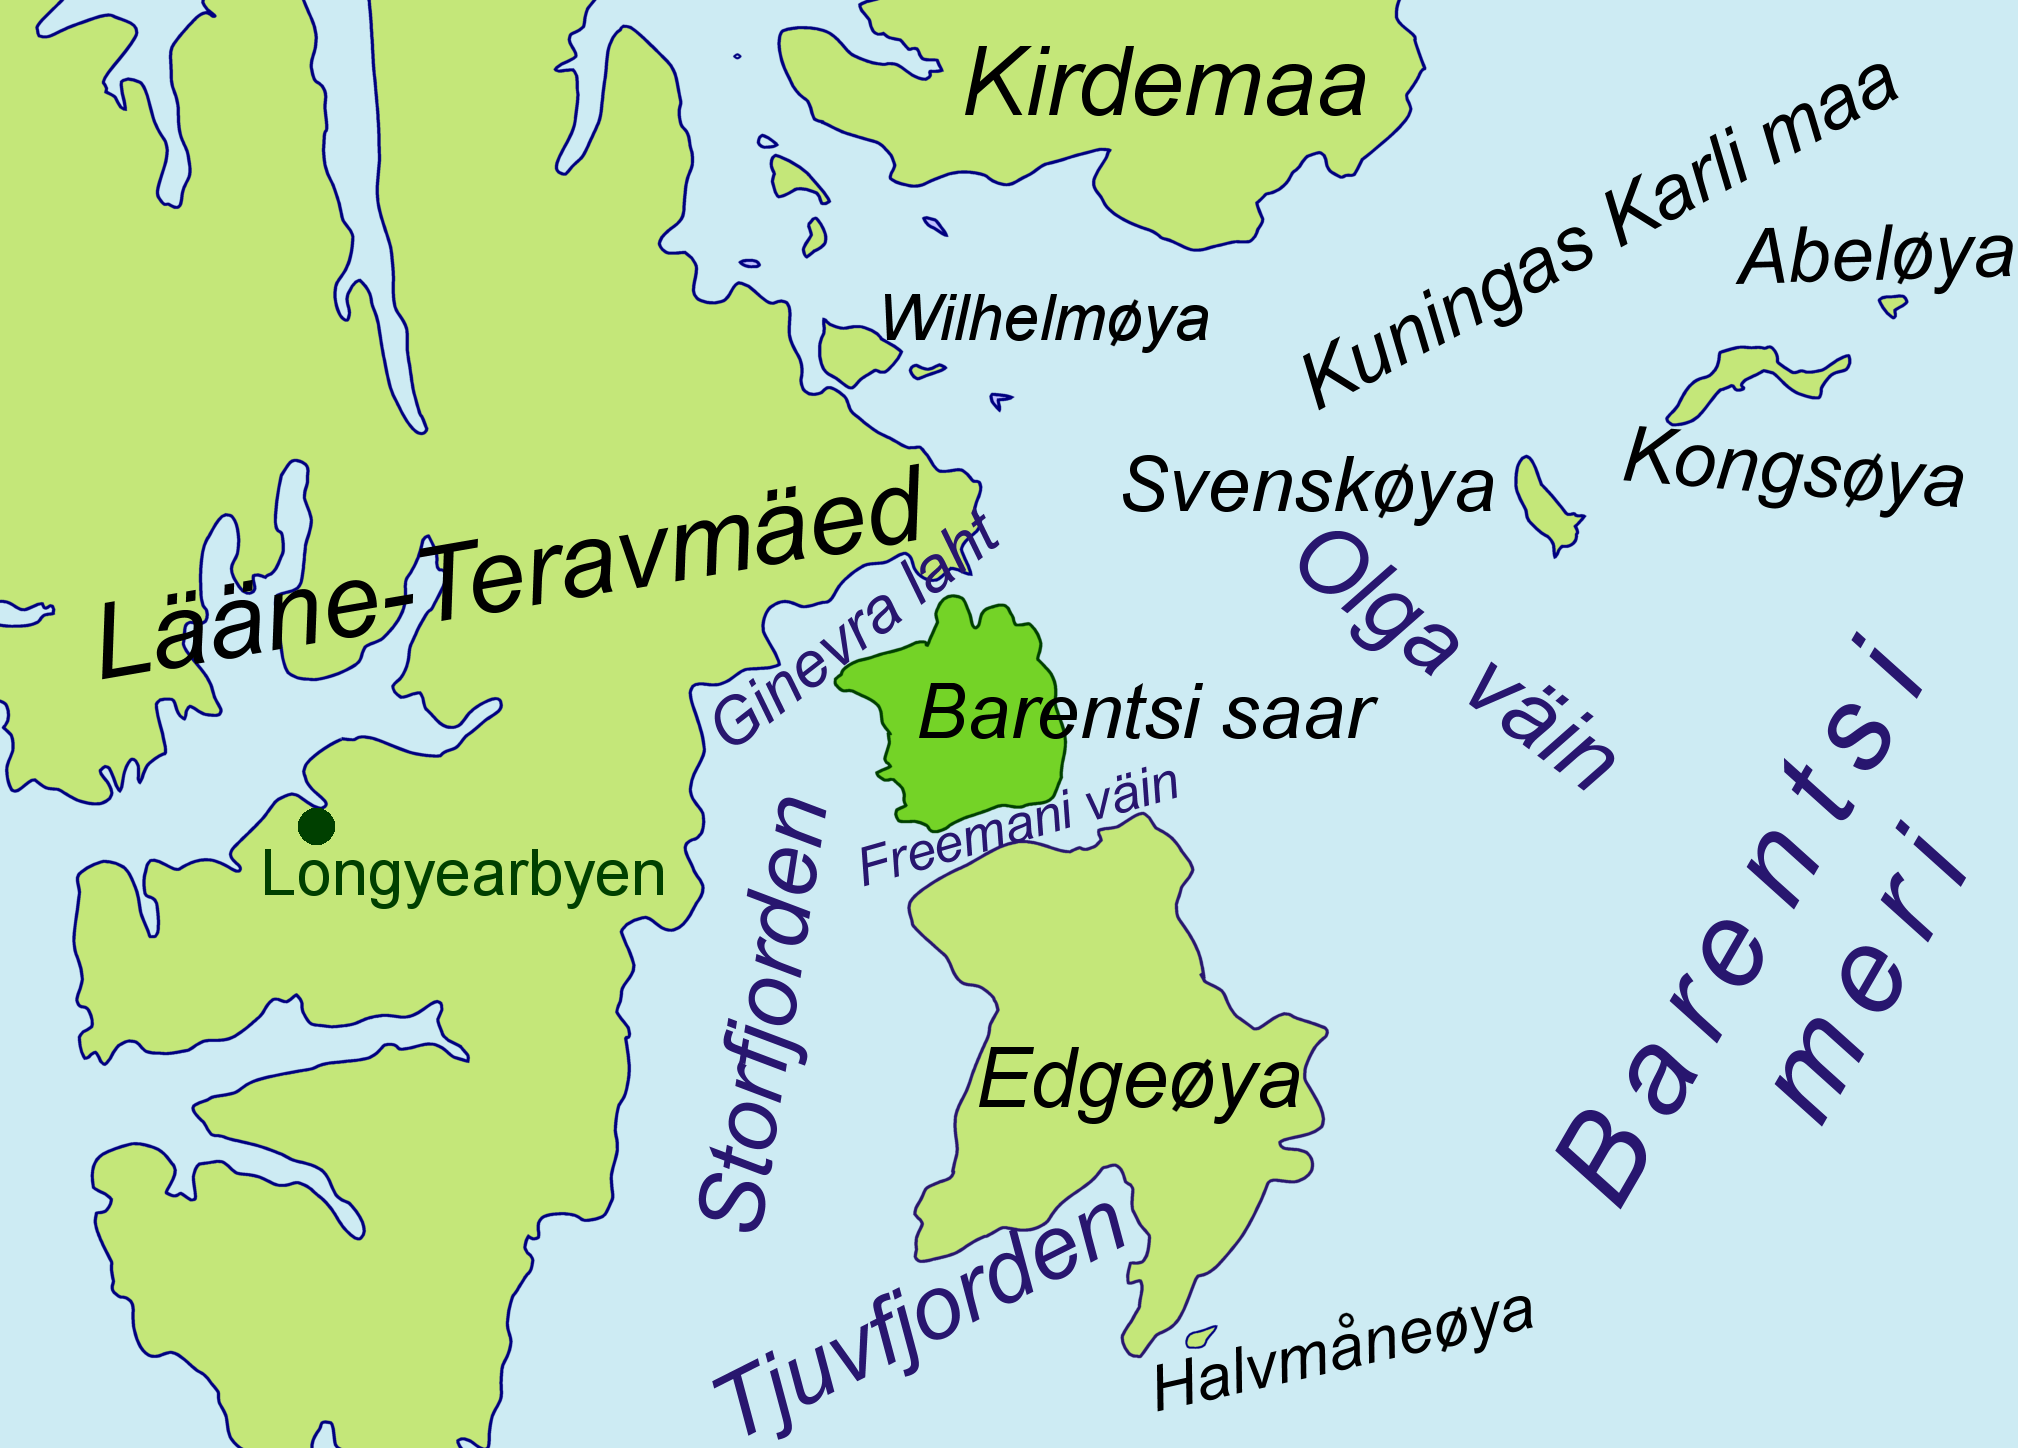 File:Barentsi saar.png - Wikimedia Commons on iran map, greece map, memel map, new zealand map, germany map, essen map, turkey map, berlin map, luxembourg map, morocco map, estonia map, albania map, saarbrucken map, oder map, rhineland map, tunisia map, trieste map, japan map, northern epirus map, poland map,